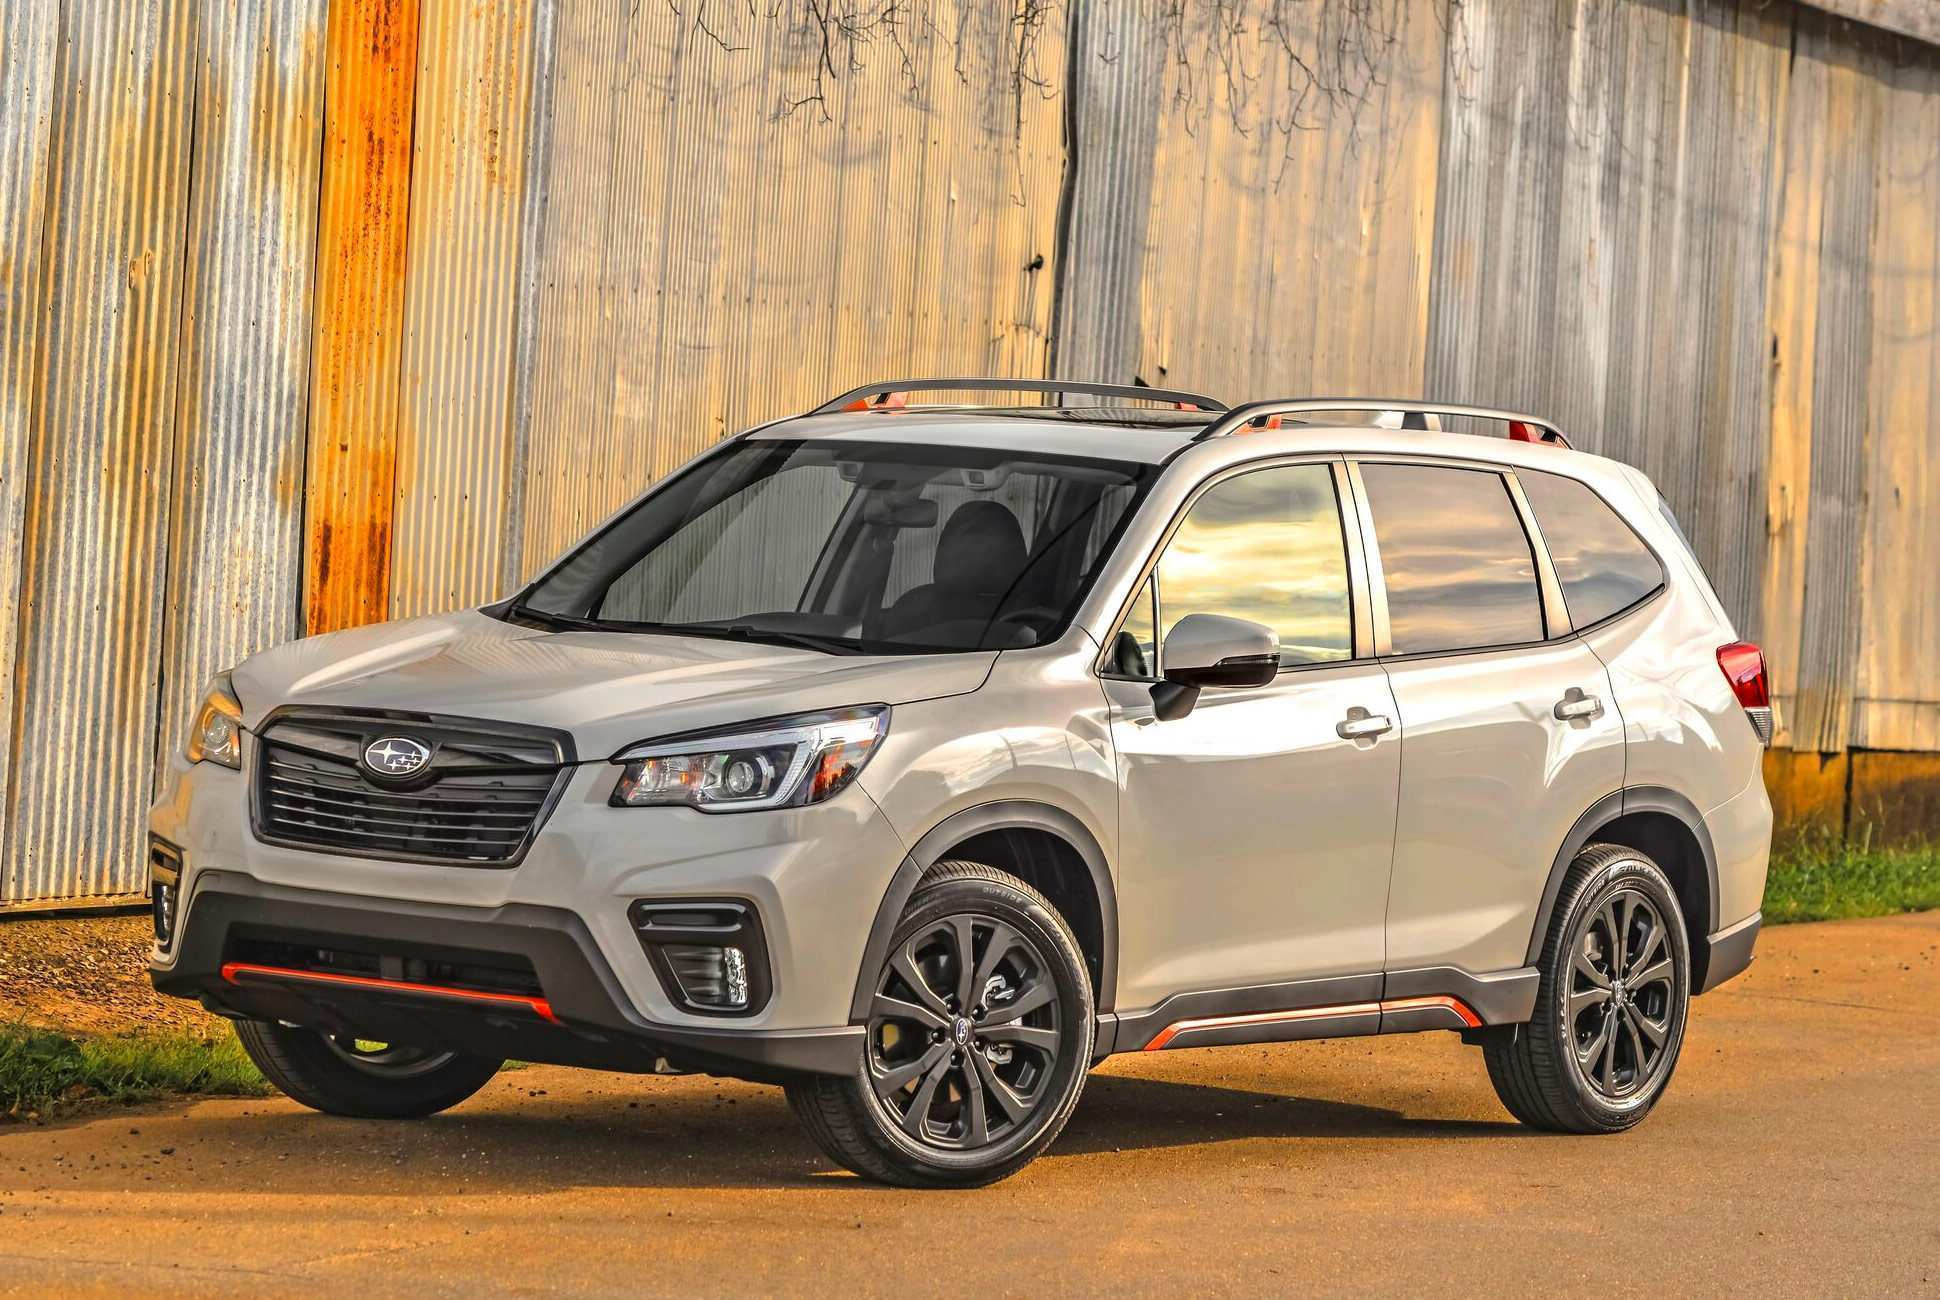 77 The Best 2019 Subaru Forester Manual Style